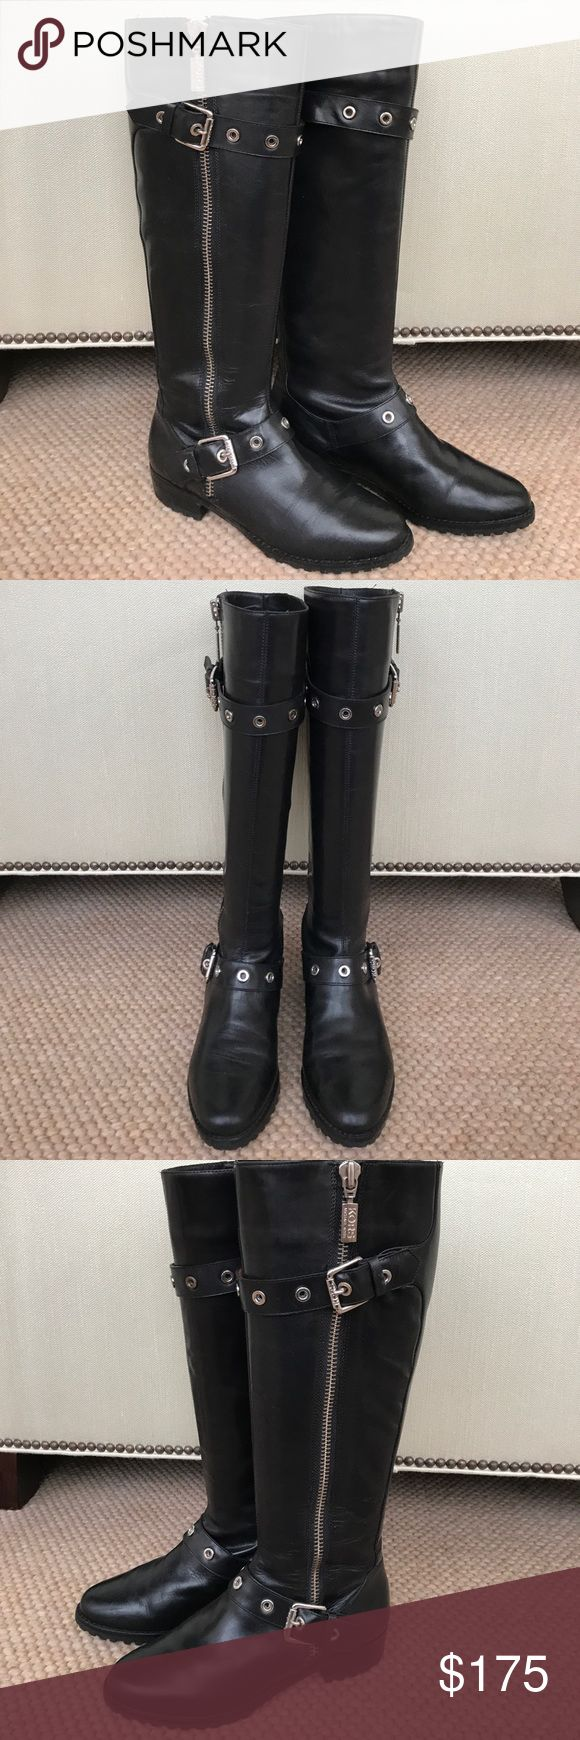 "Michael Kors ""Fallon"" Shiny Calf Michael Kors ""Fallon"" Shiny Calf Moto Boot  Excellent pre-owned condition w/ minor creasing as shown in photos.   Classic tall boot w/ a little moto edge.  Beautiful quality leather Made in Brazil Crescent toe Buckled strap detail at top & at shaft of ankle Silver HW 1.25"" heel w/ lug sole Zip shaft- 17"" sole to top boot shaft  Will try to ship w/ orig shoe box if I can find a large enough box to pack them in. Otherwise will ship w/out shoebox. Either way…"